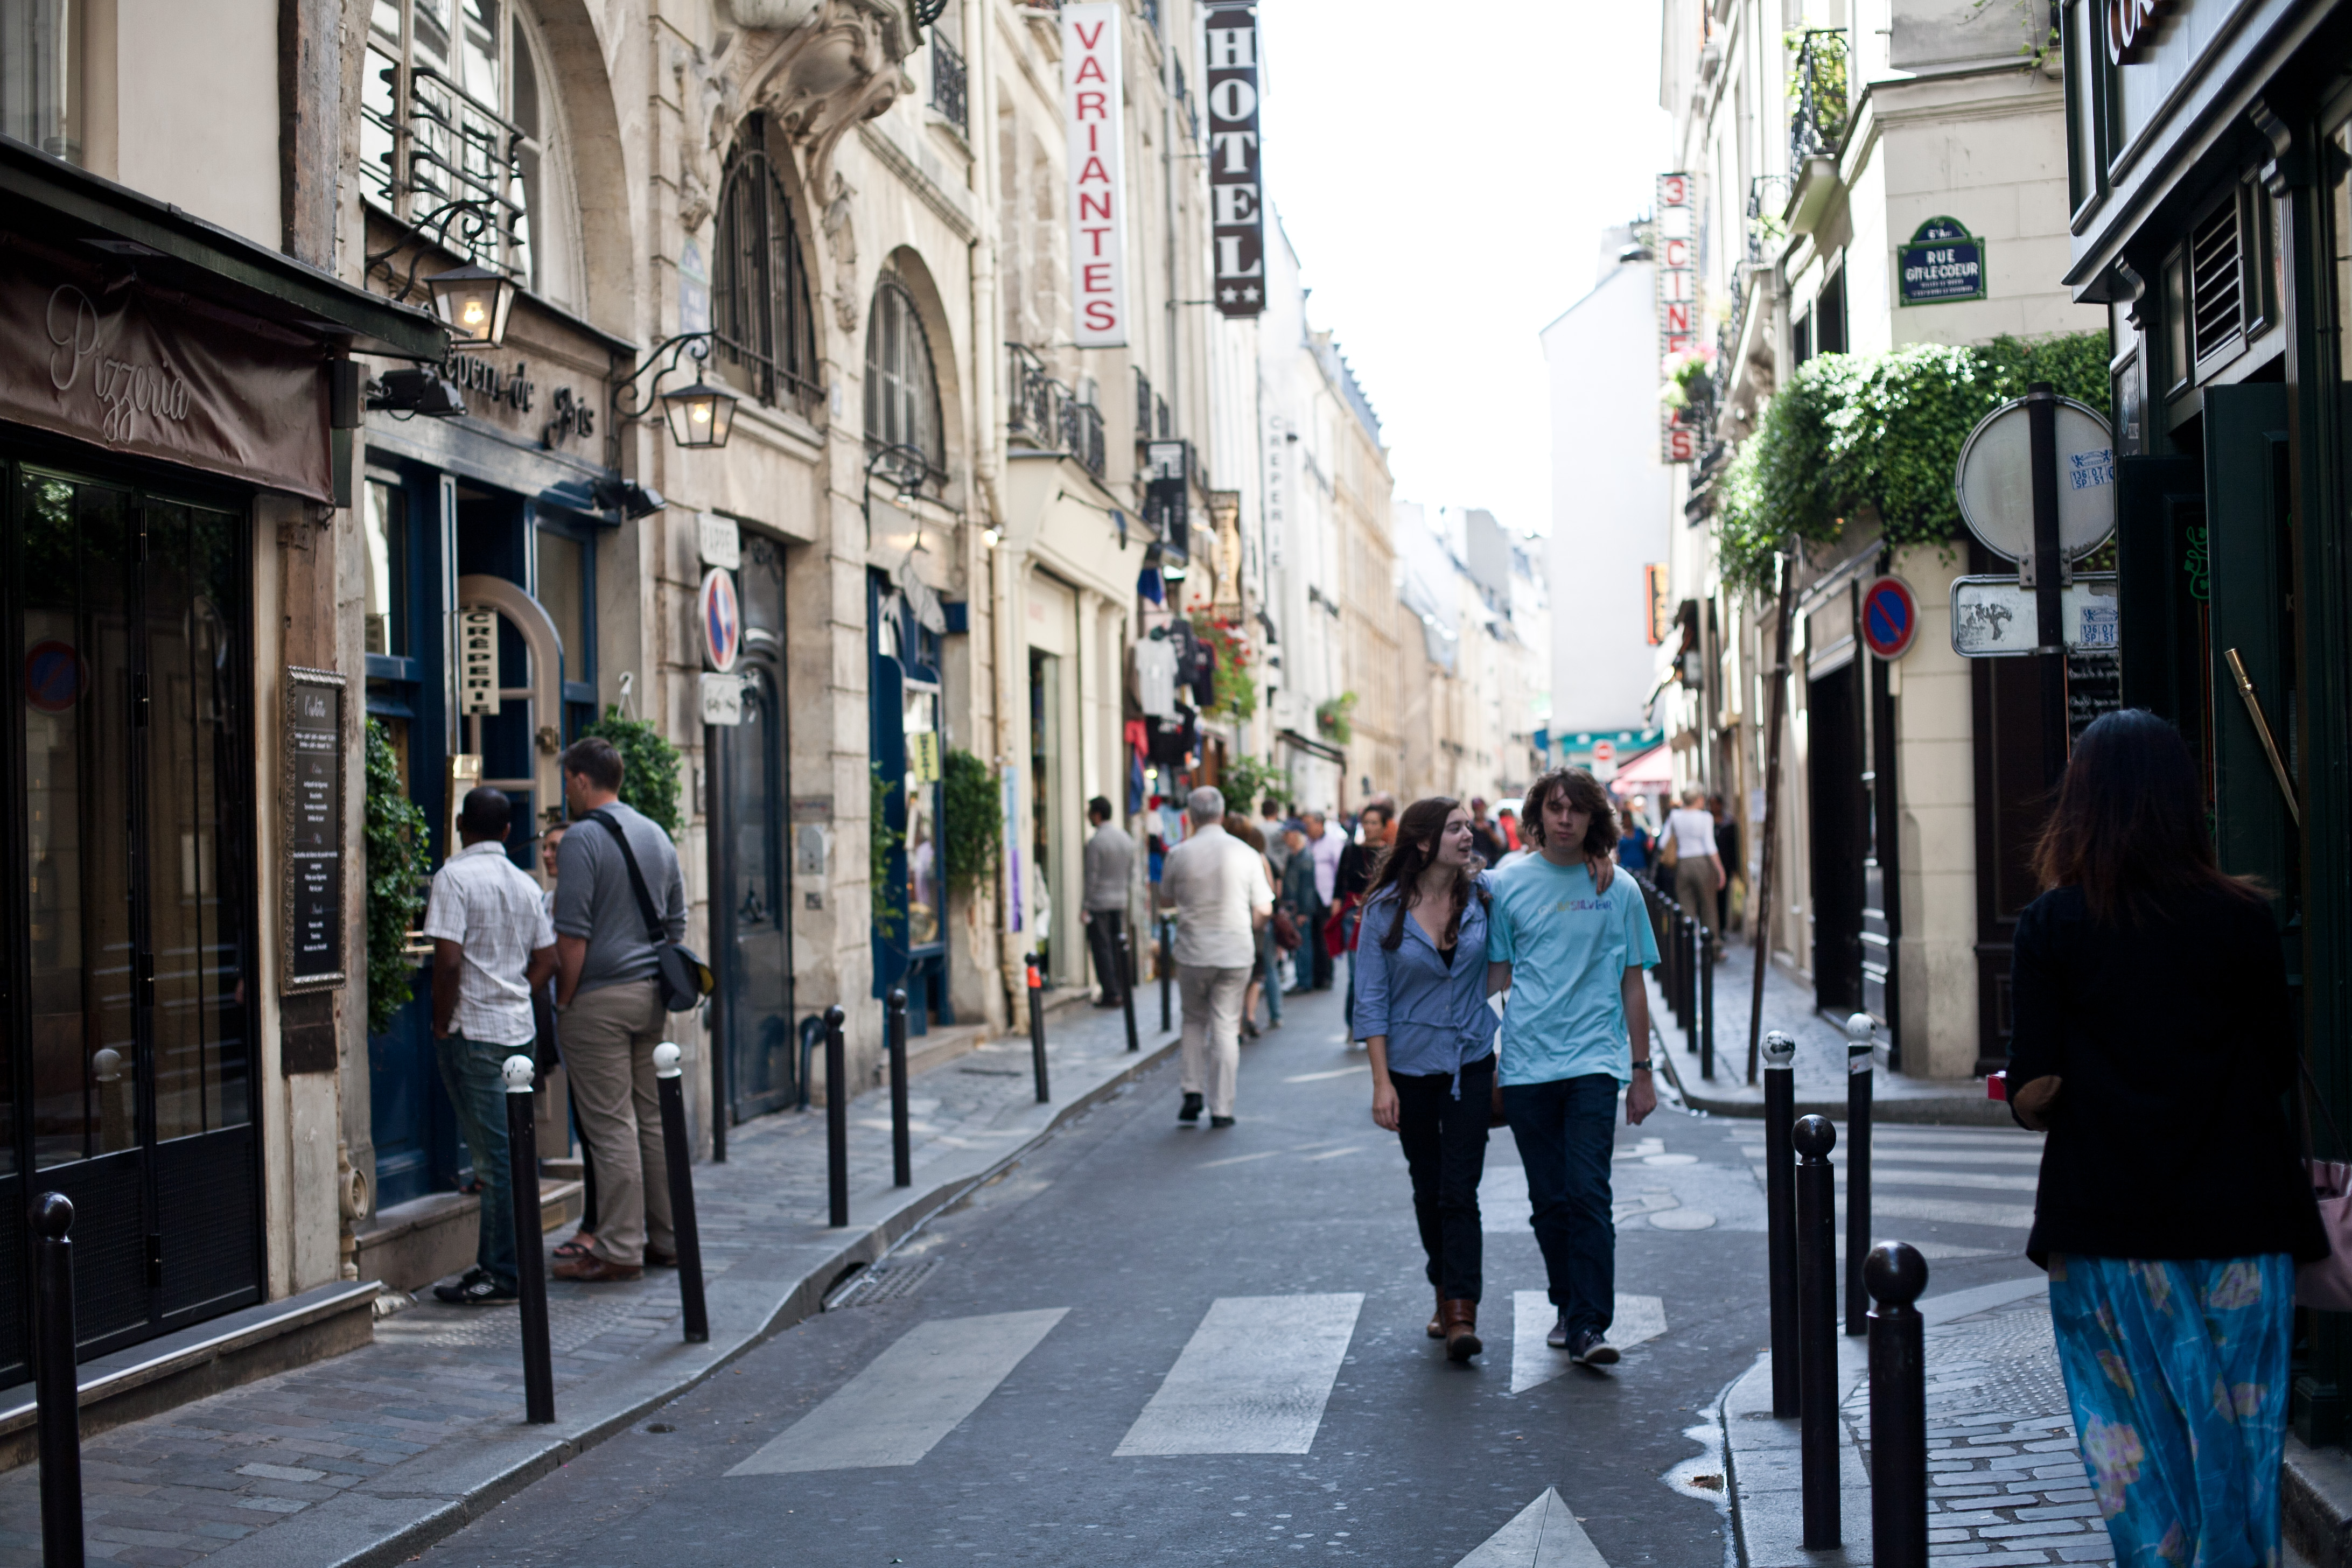 File:Rue St. Andre des Arts.jpg - Wikimedia Commons